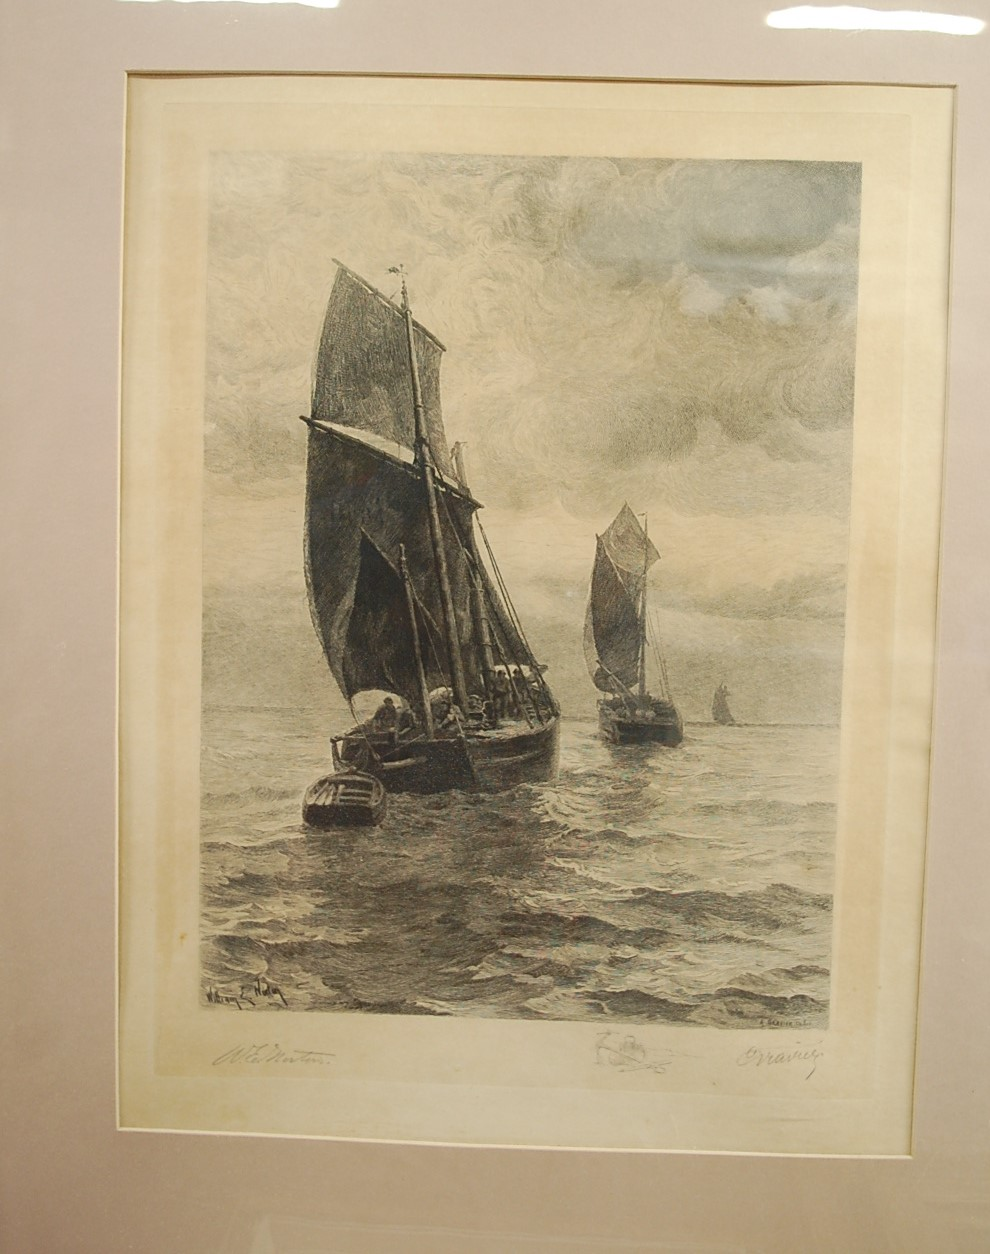 Lot 1010 - After William E. Norton - Fishing boats, etching by A Gravier, pencil signed to the margin by both